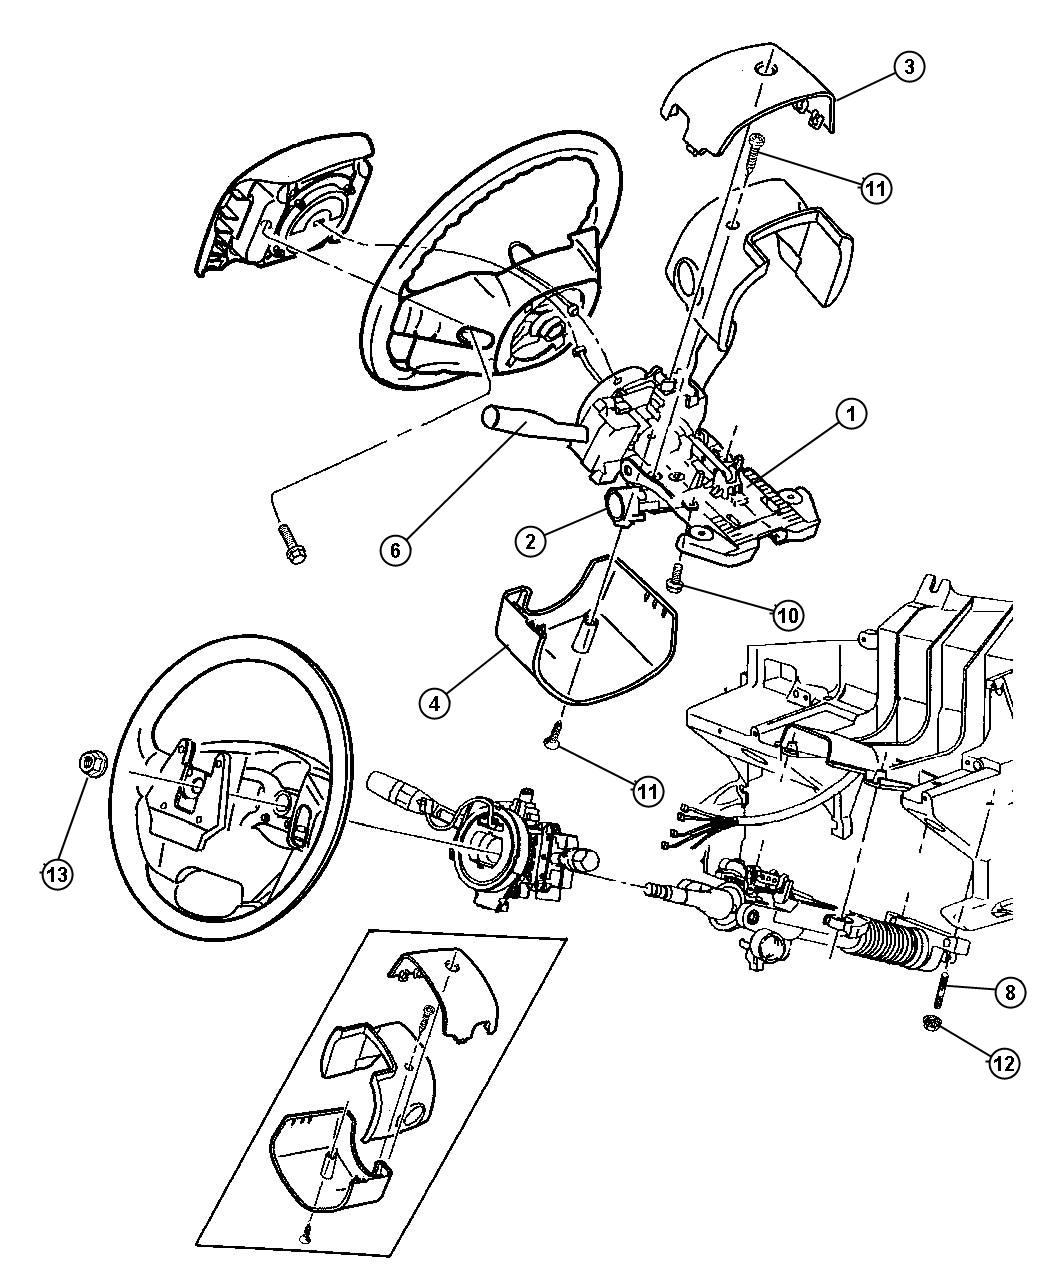 Pontiac G8 Transmission Diagram, Pontiac, Free Engine